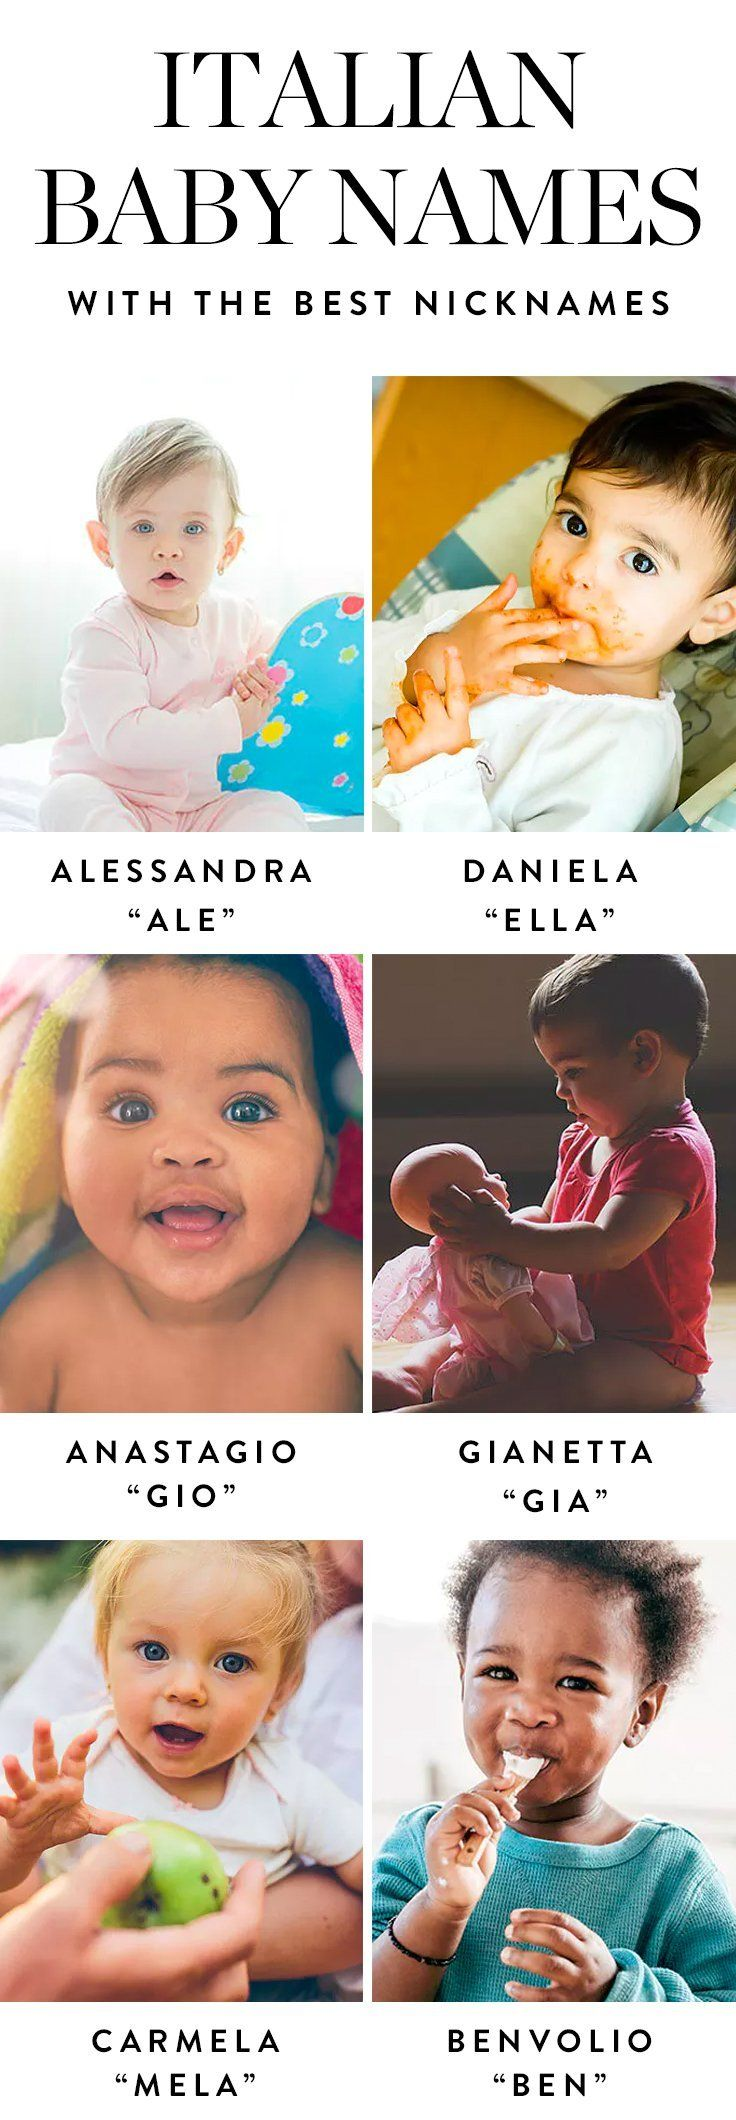 We'd seriously consider giving our future kids one of these 14 Italian baby names—especially because they have such cute nicknames.